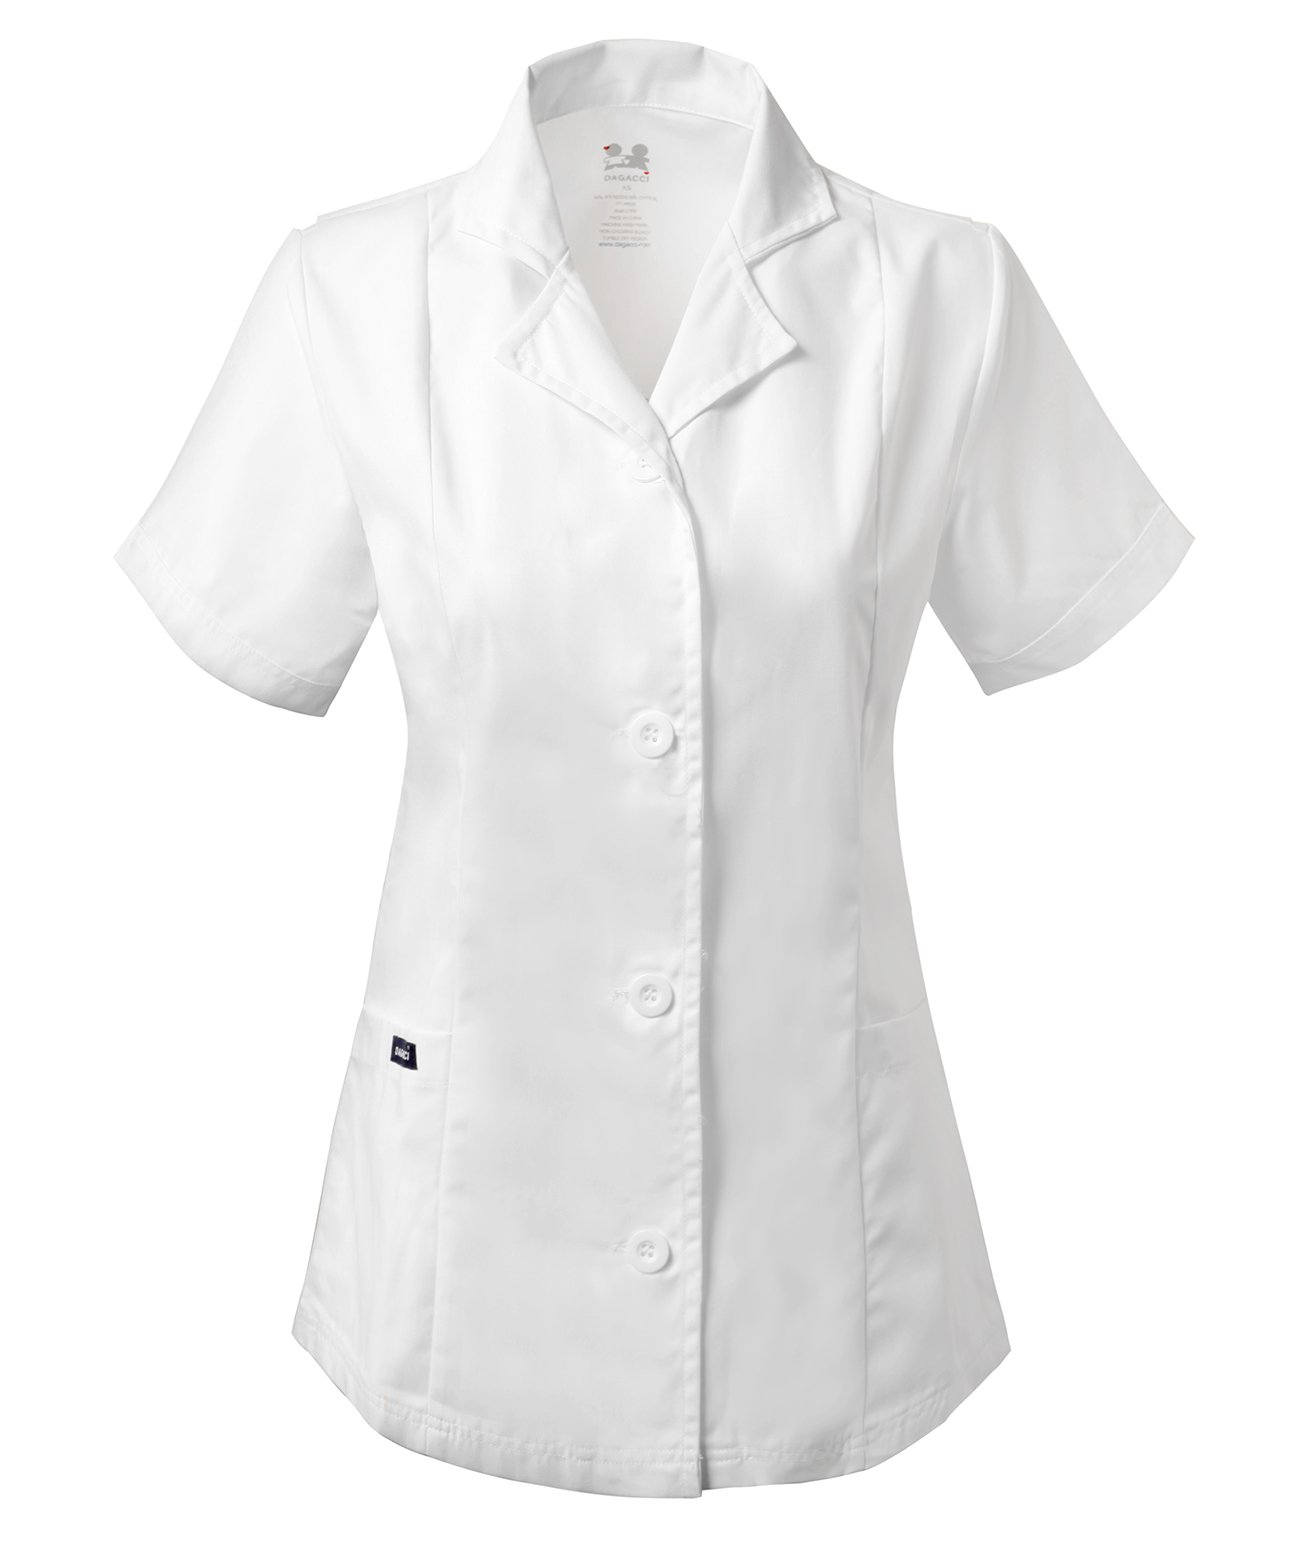 Dagacci Scrubs Medical Uniform Women's Chest Comfortable Short Sleeve Lab Coat (Small)